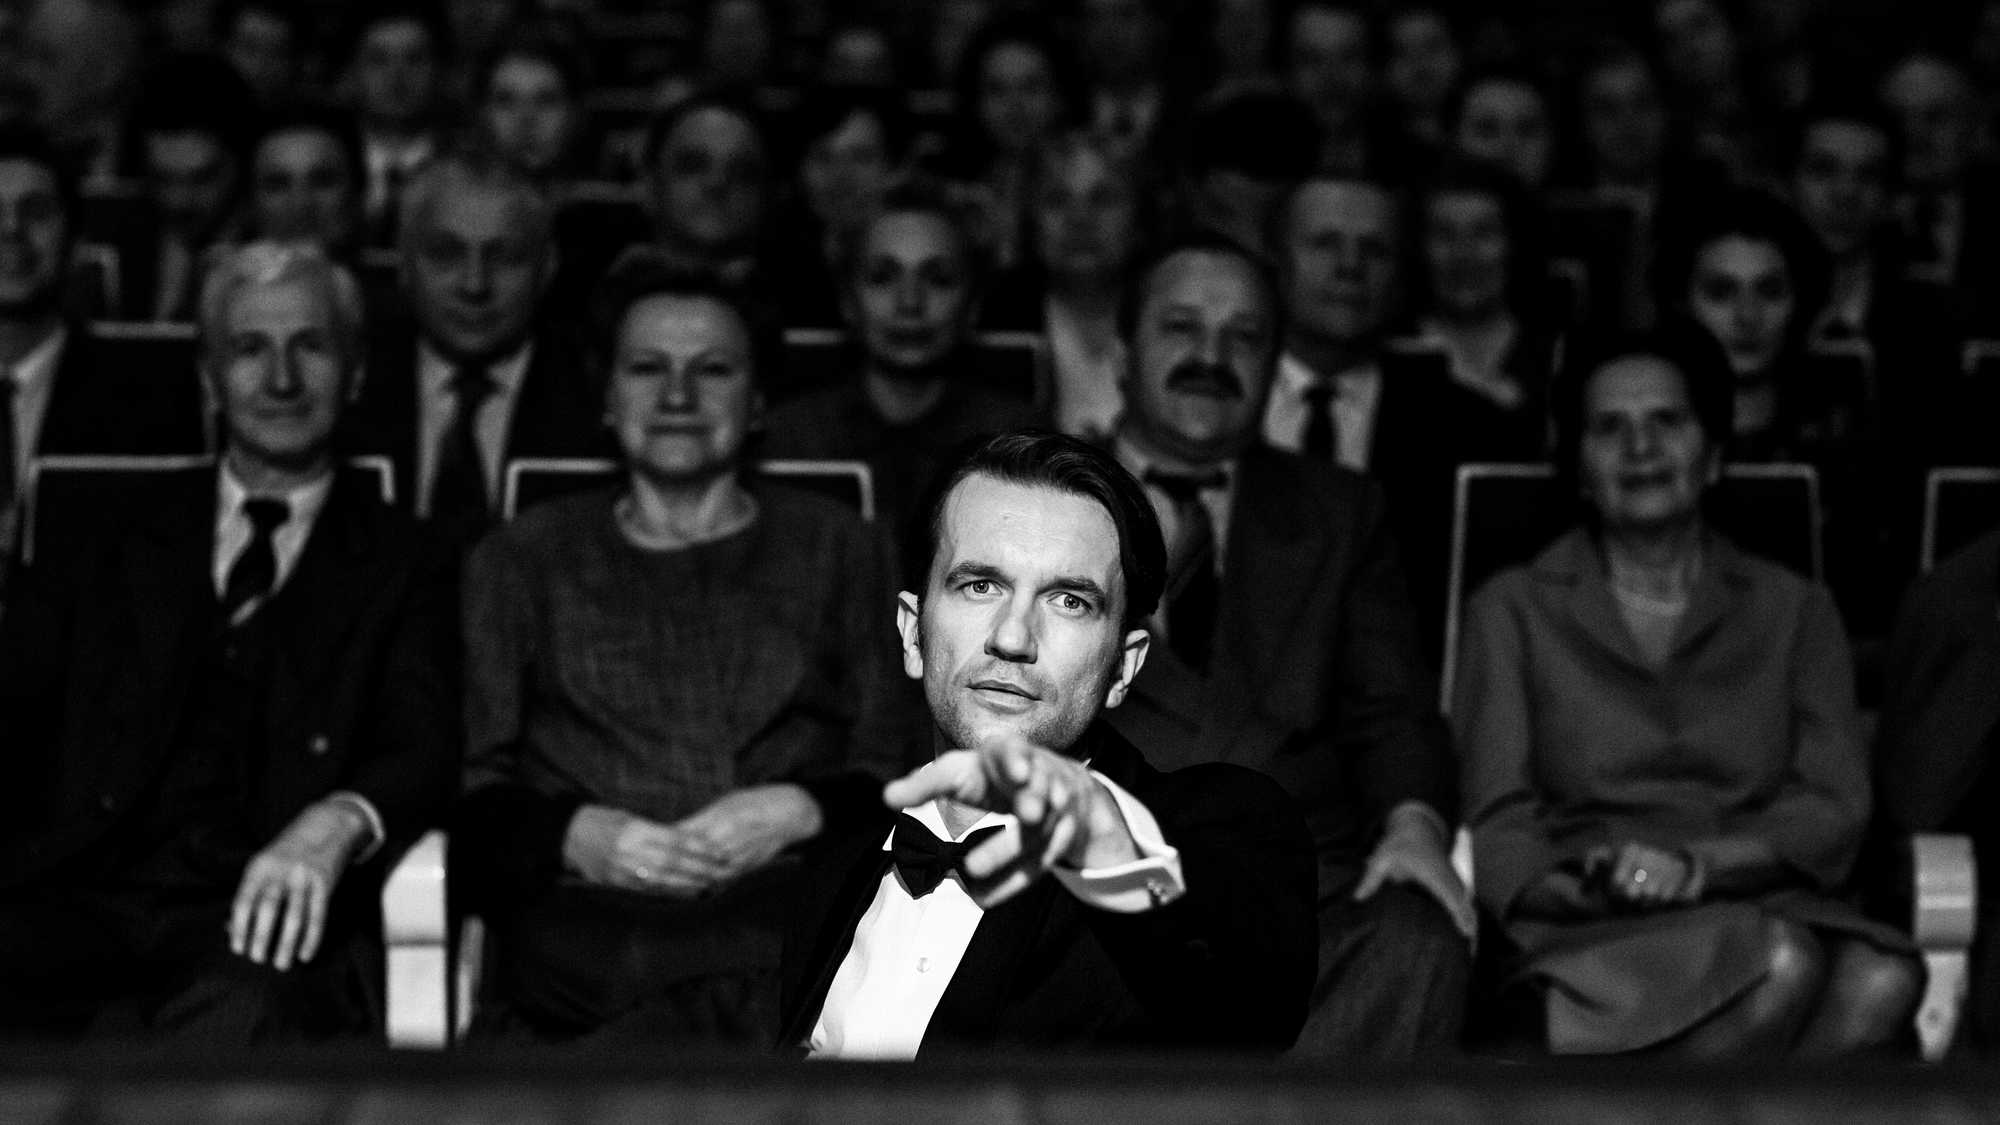 coldwar2-2000-2000-1125-1125-crop-fill